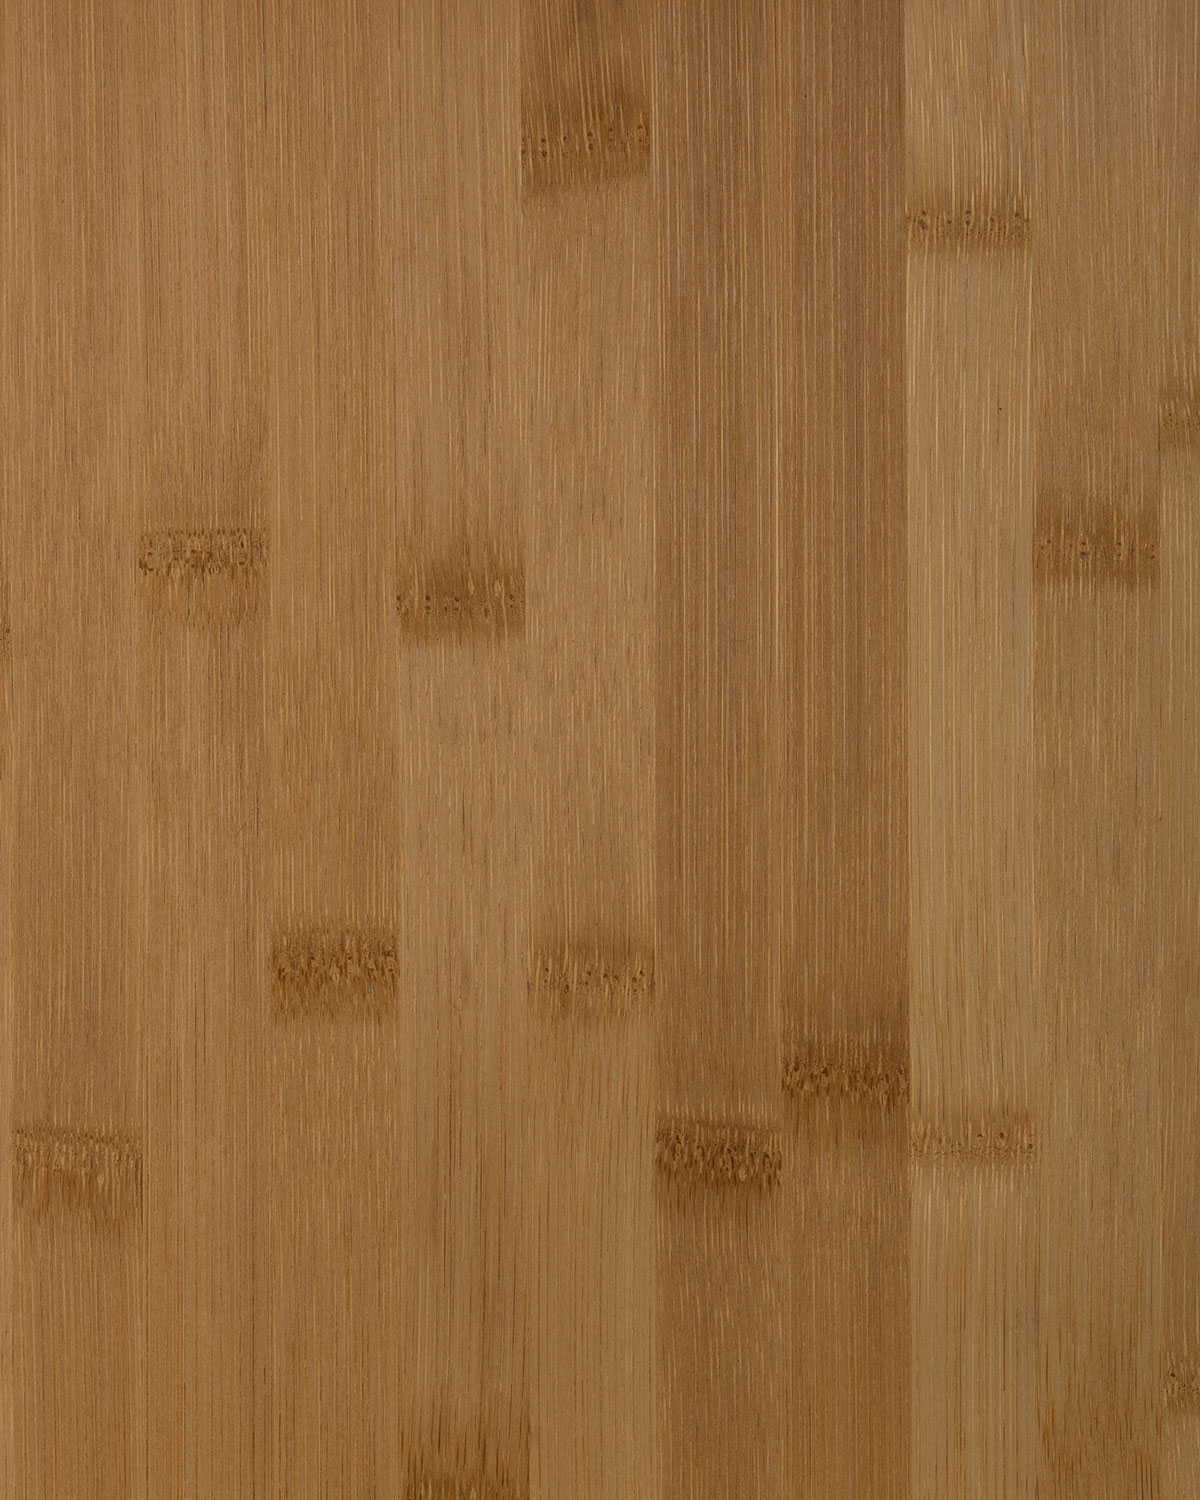 Bamboo, Caramel Color Wide